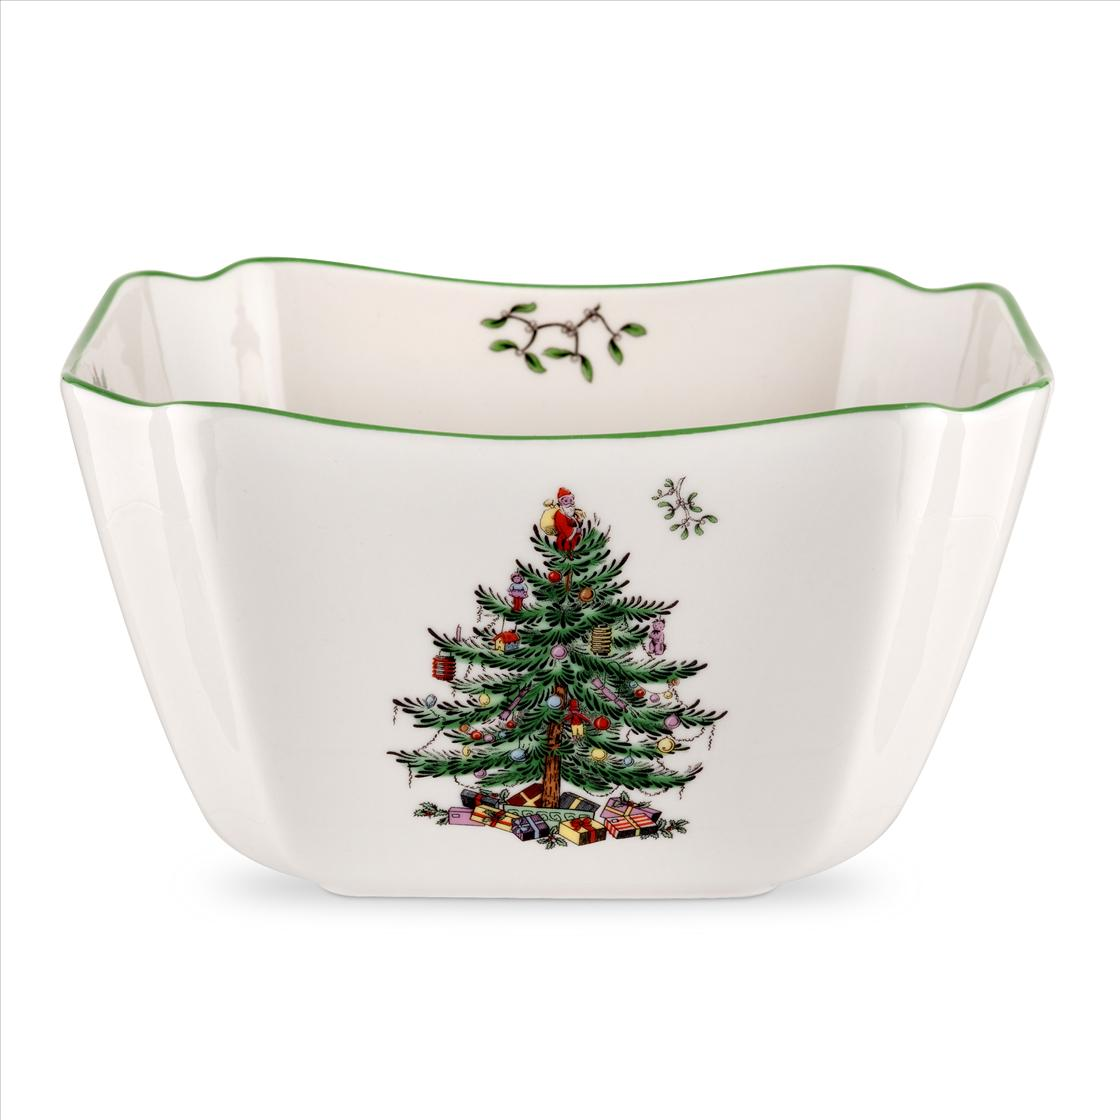 Spode Christmas Tree Small Square Bowl image number 0